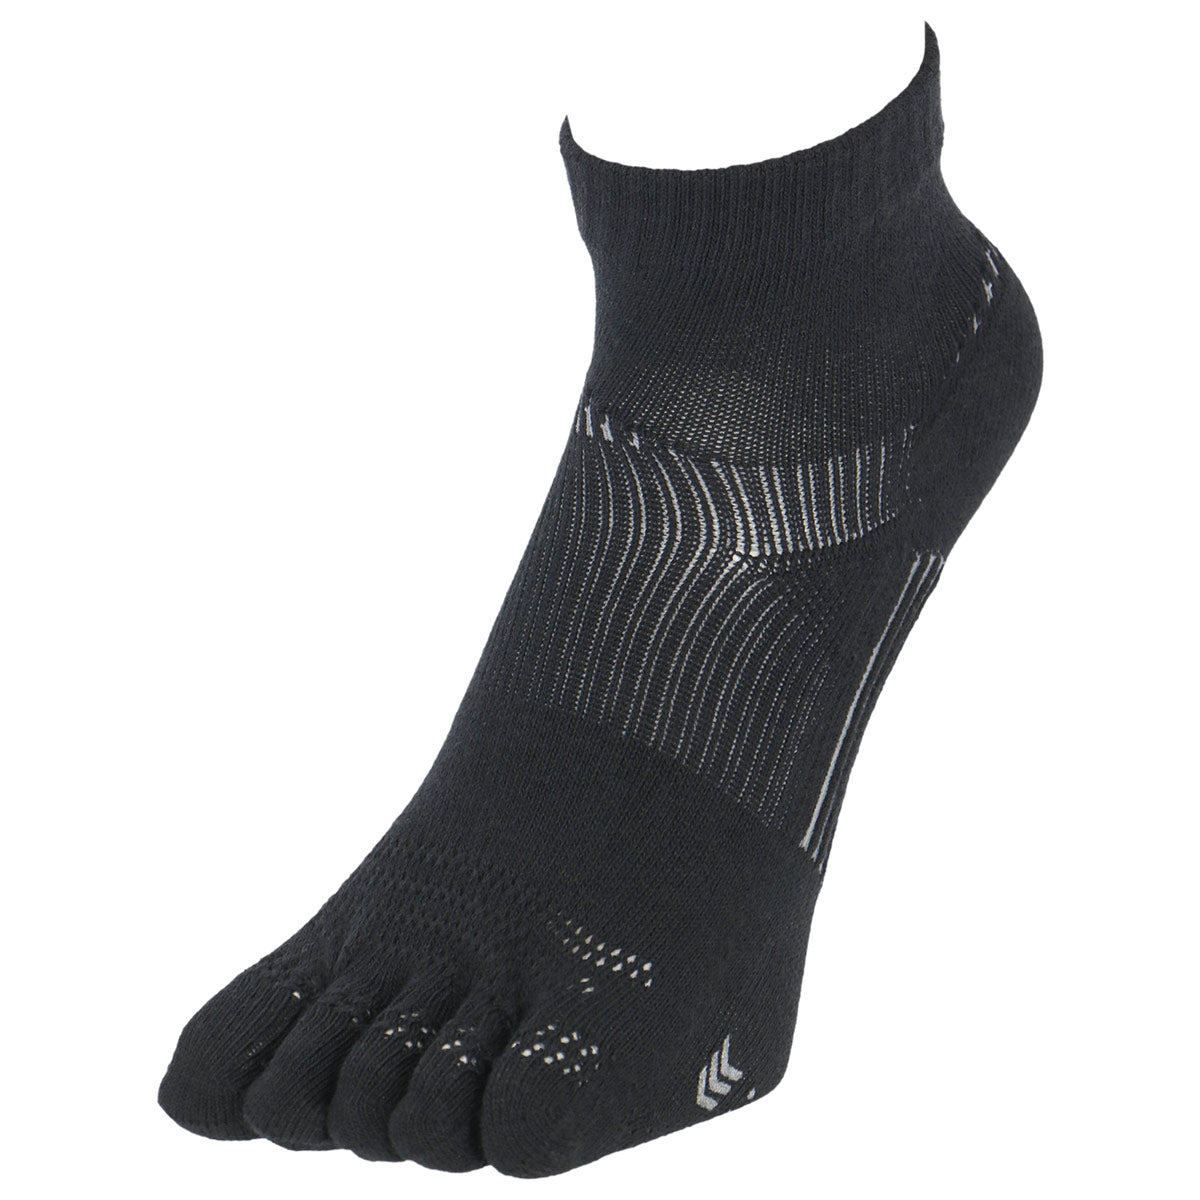 5 Toes Arch Support Ankle Running Socks with Grips for Men | Black - CHERRYSTONE